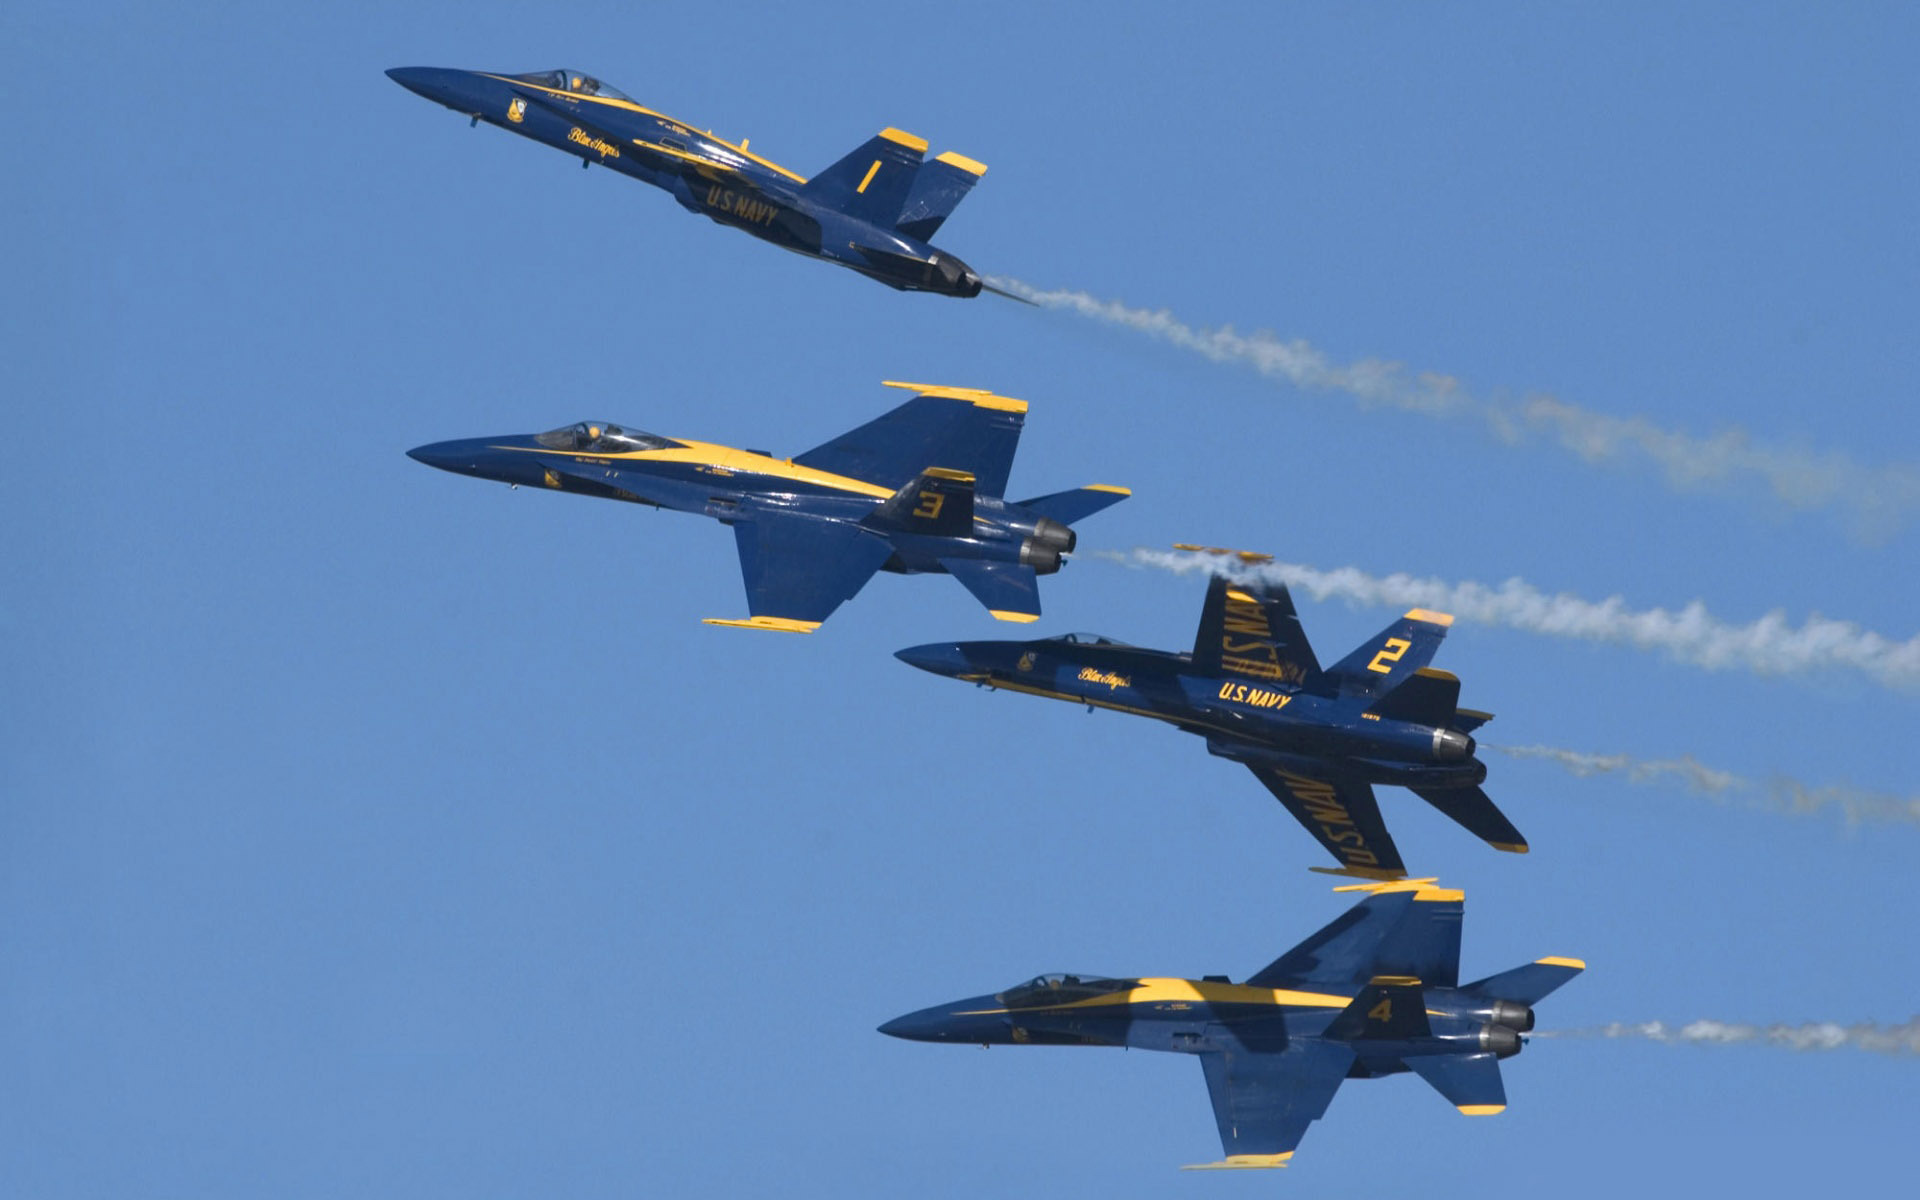 The Blue Angels McDonnell Douglas FA-18 Hornets